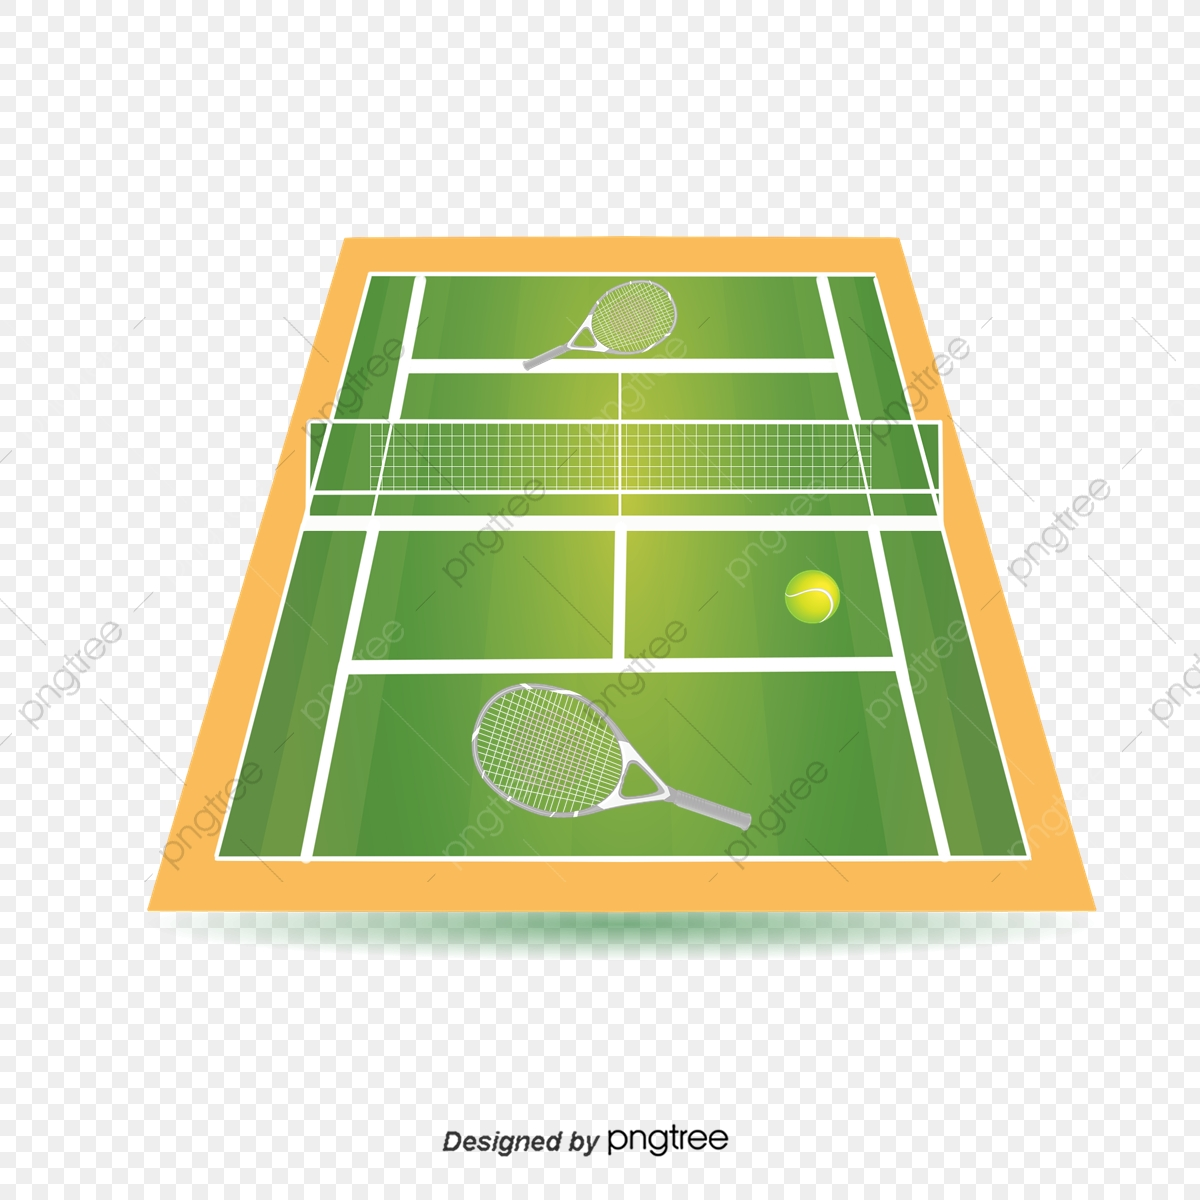 Illustration Of Green Tennis Court, Illustration, Popular.